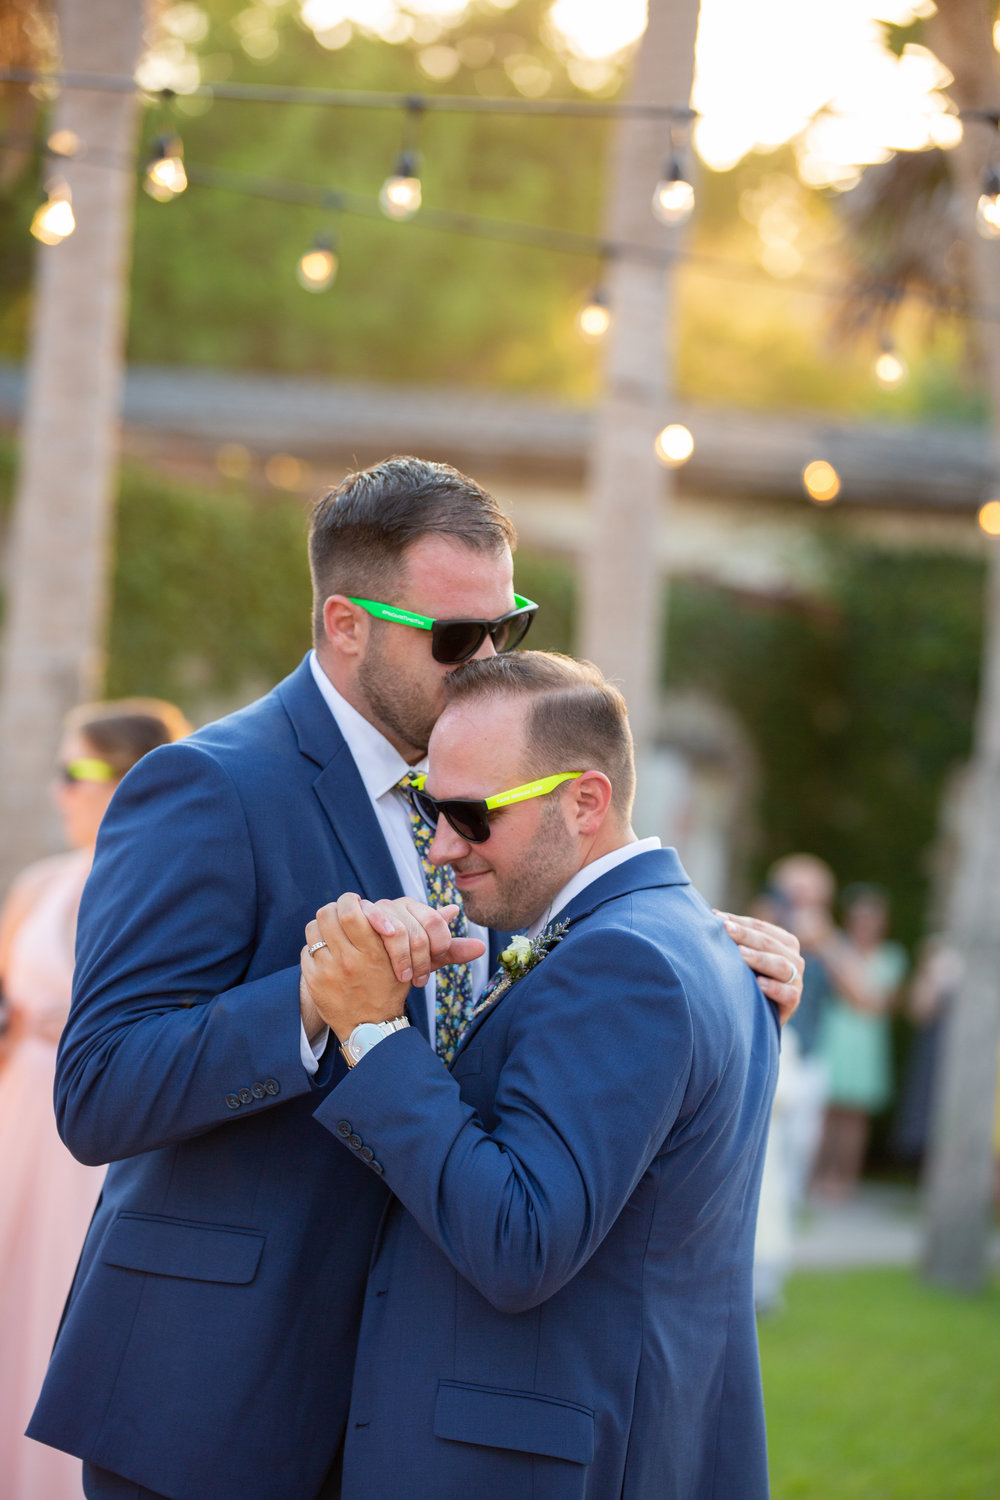 Groom and Groom with Sunglasses.jpg